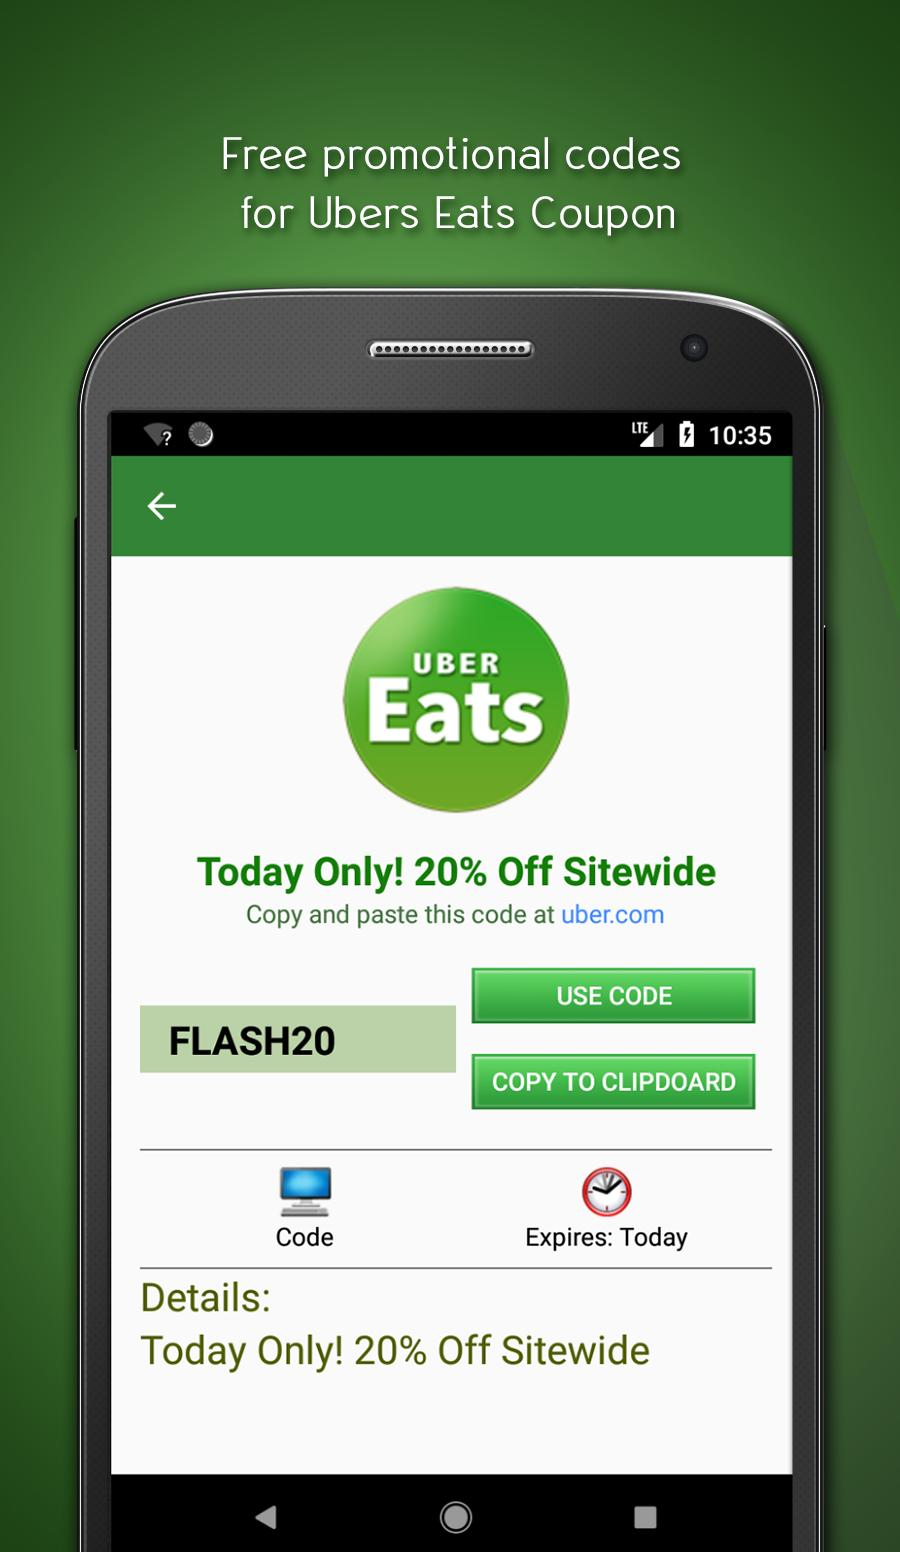 Free Uber Eats Coupon and Promo Code for Android - APK Download